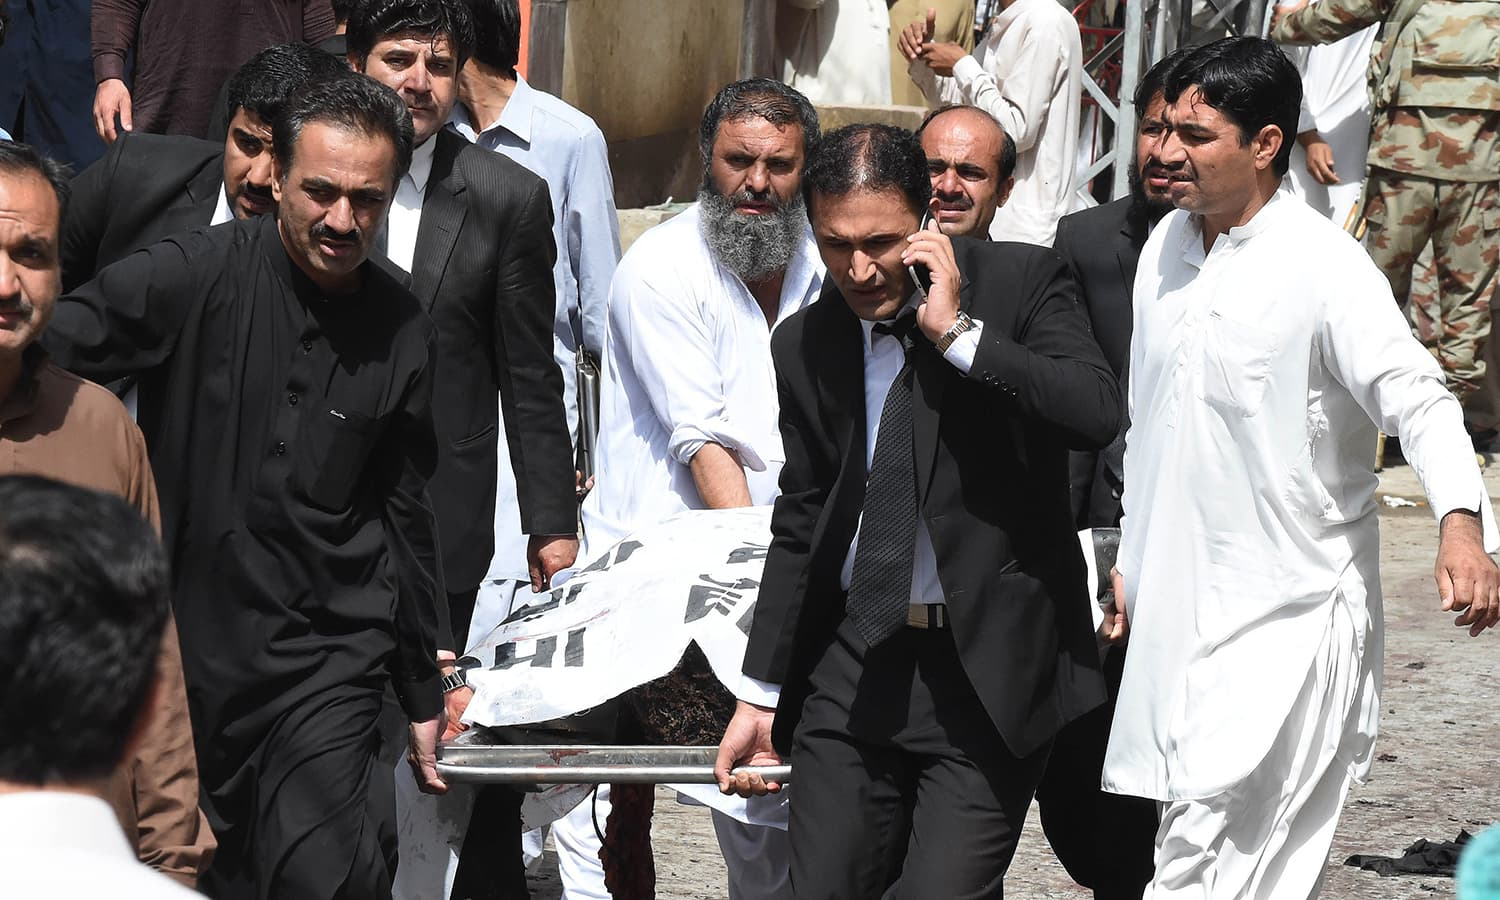 Lawyers carry the body of a colleague on a stretcher after a bomb explosion at a government hospital premises in Quetta on August 8, 2016.—AFP/File